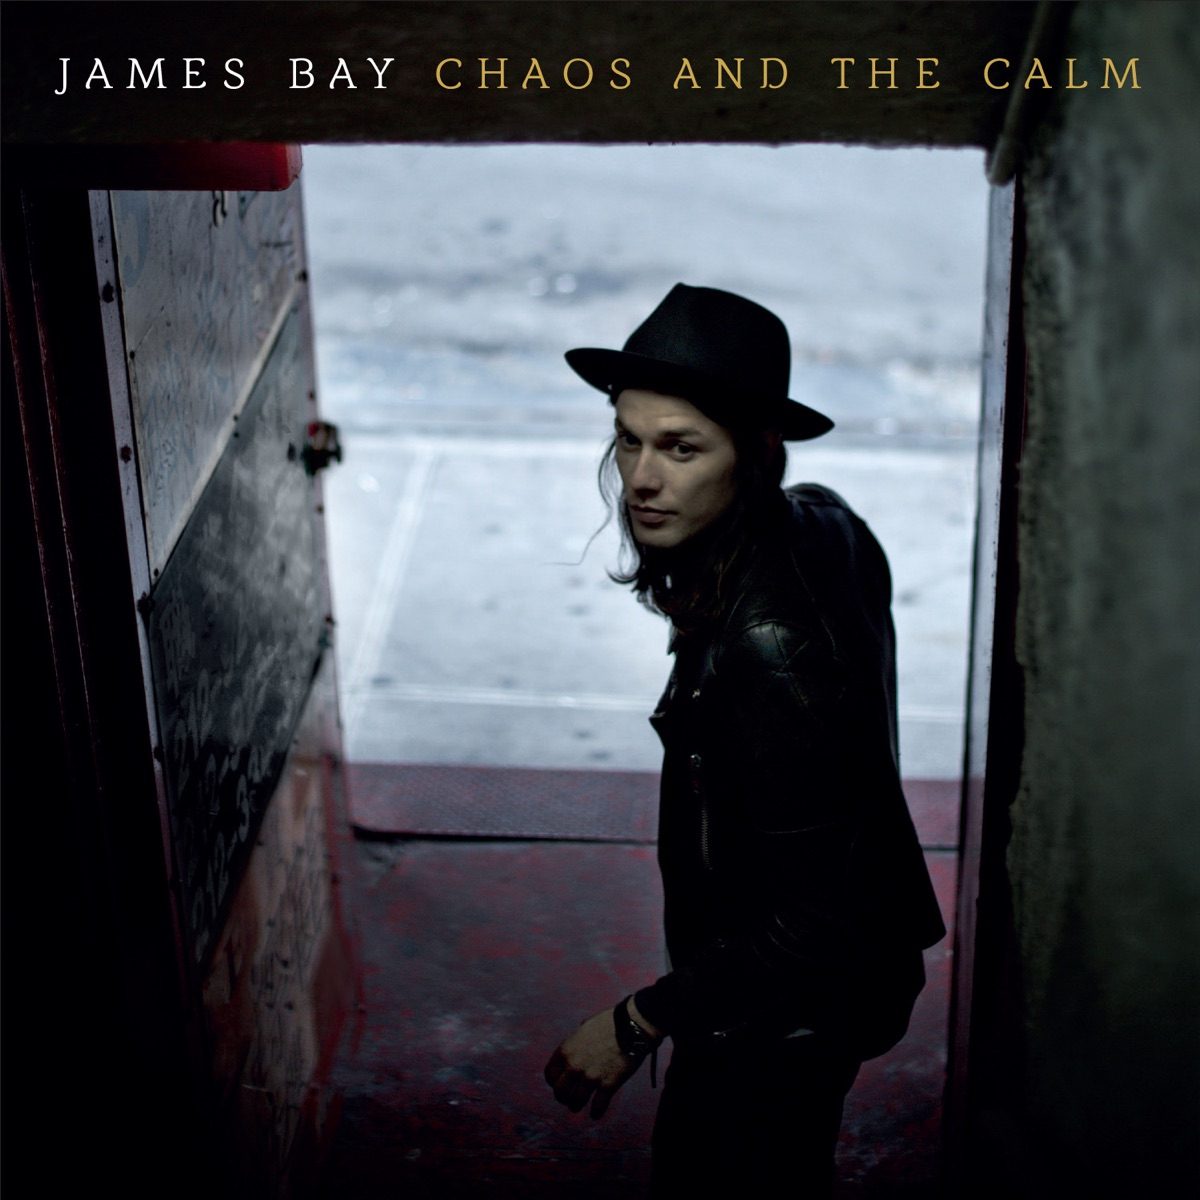 Chaos and the Calm James Bay CD cover